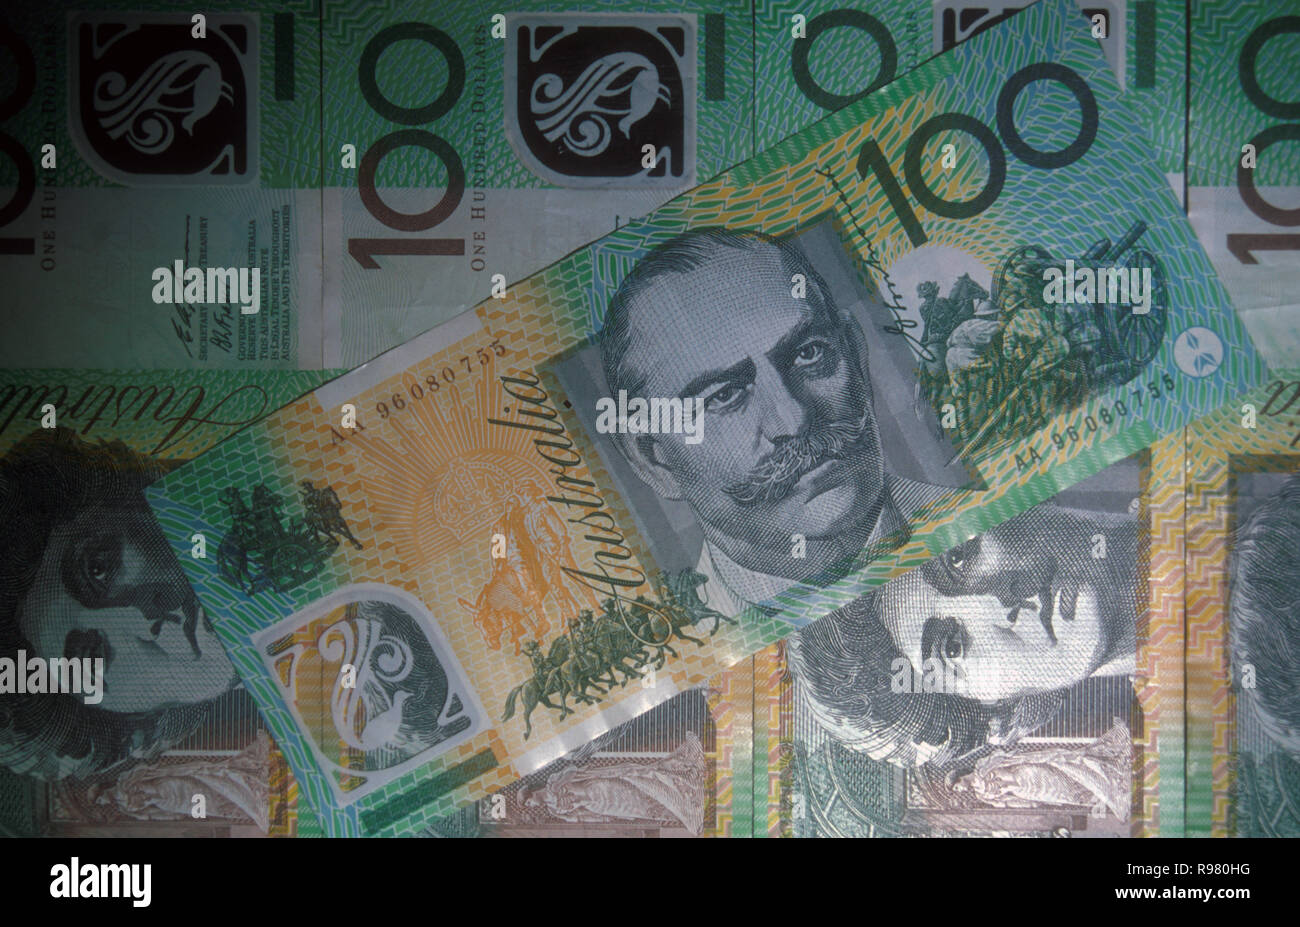 AUSTRALIAN ONE HUNDRED DOLLAR NOTES FEATURING SIR JOHN MONASH AND DAME NELLIE MELBA - Stock Image